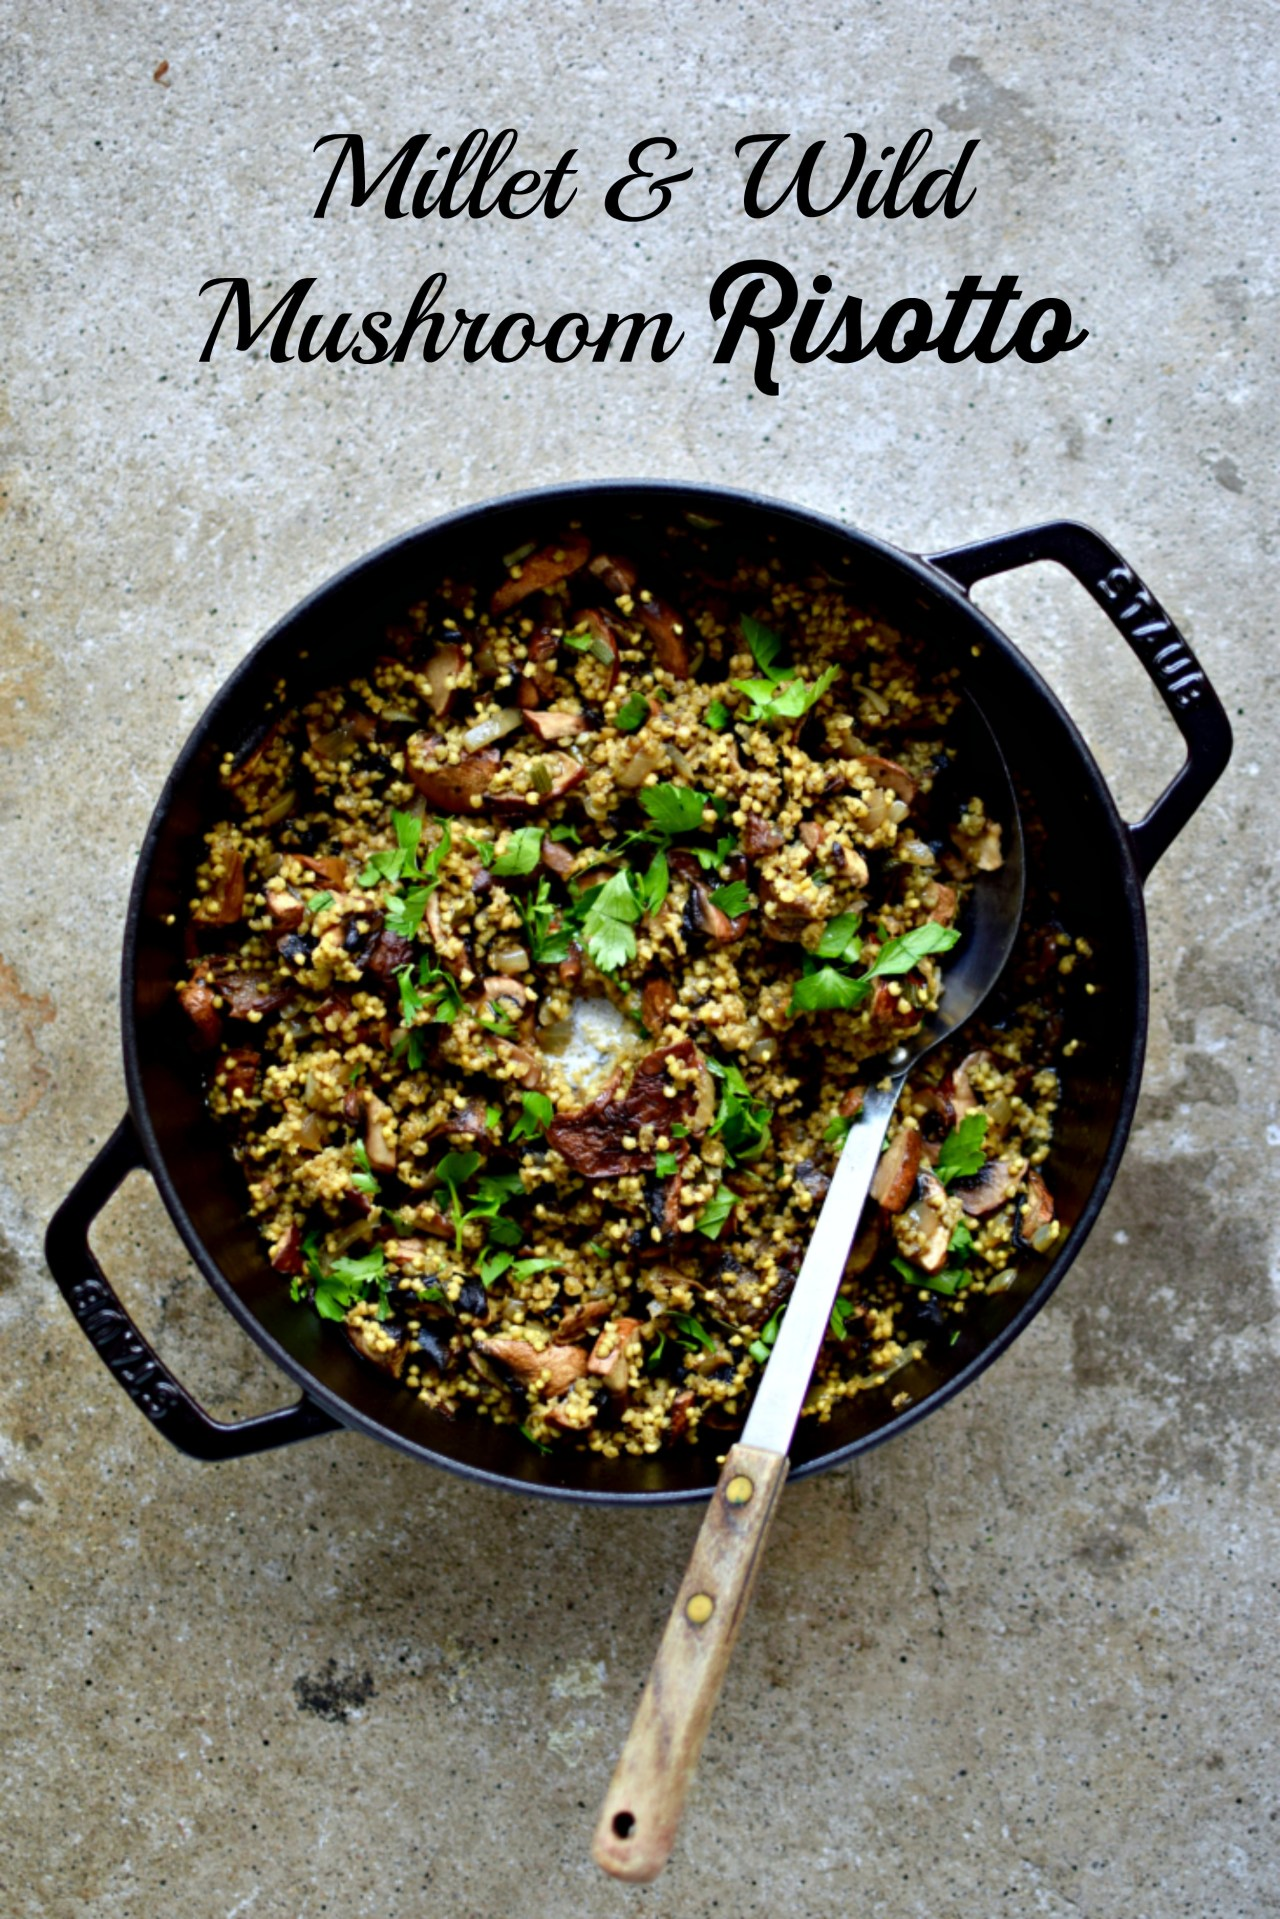 A Polish spin on the classic Italian dish, risotto. Made with millet instead of rice, this easy vegan recipe is laden with wild mushrooms for a decidedly autumnal dish. A perfect Meatless Monday or midweek dinner choice for the whole family.